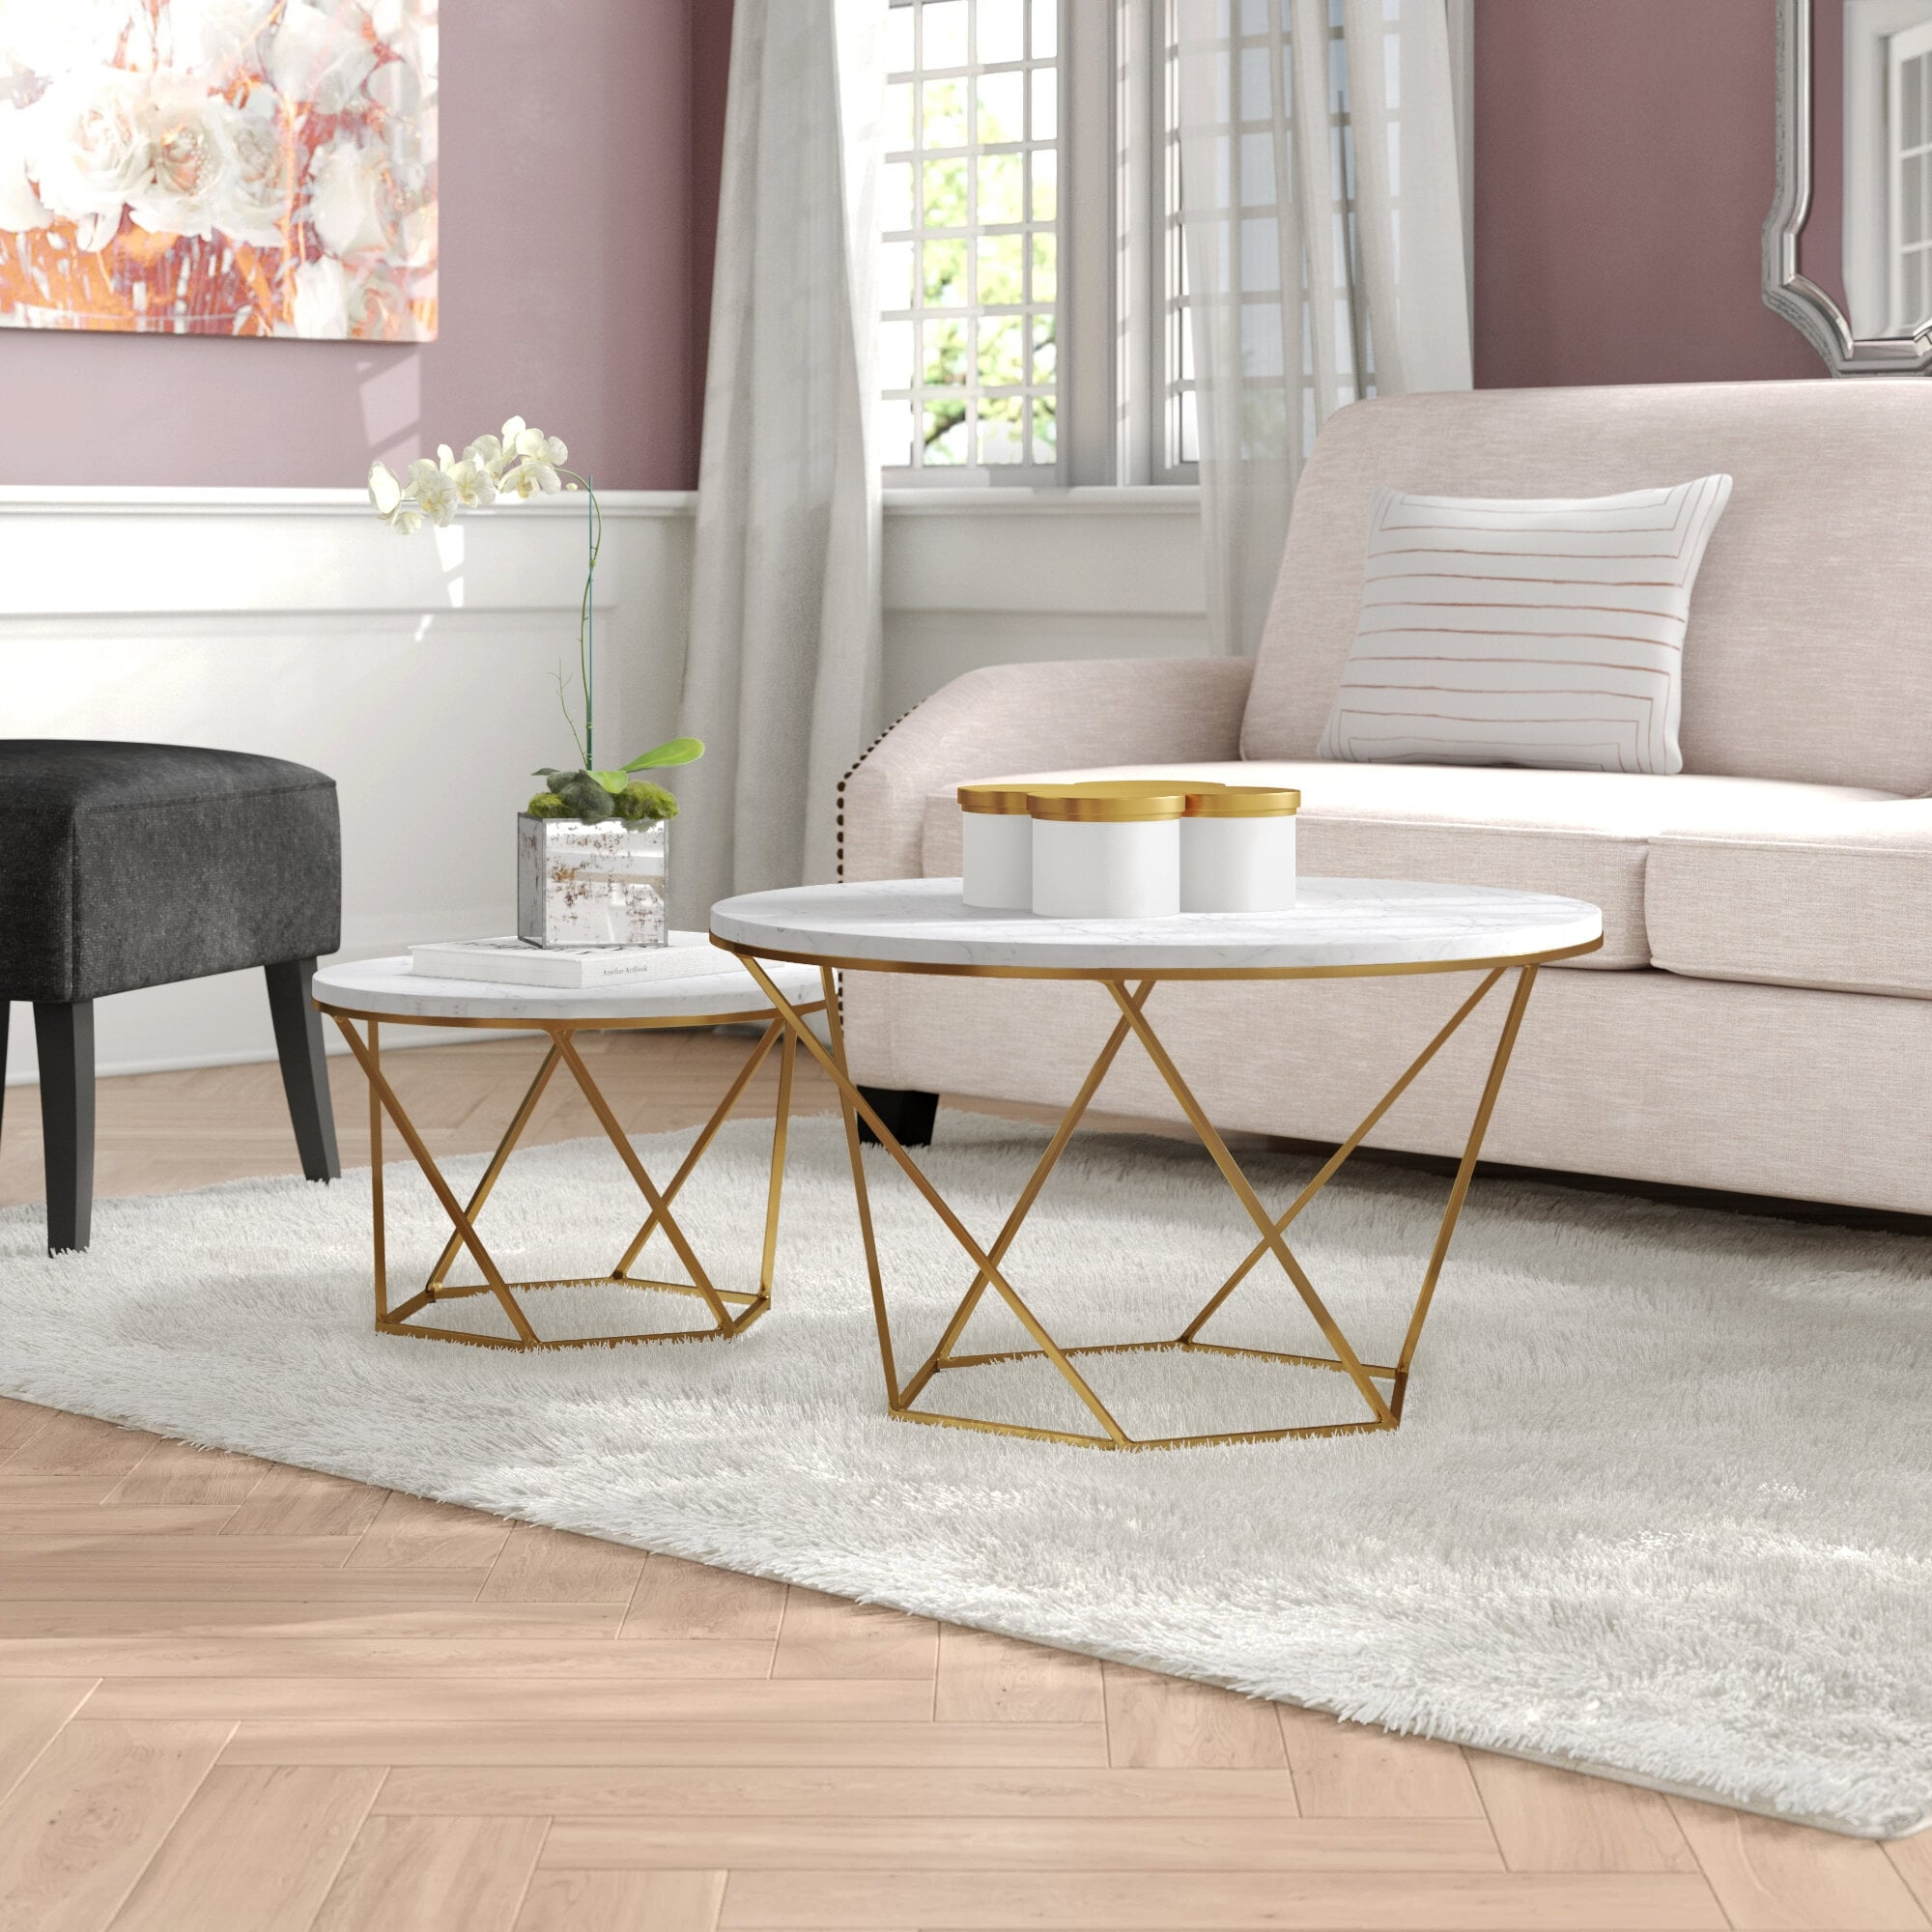 Faux White Marble Coffee Table You Ll Love In 2021 Visualhunt